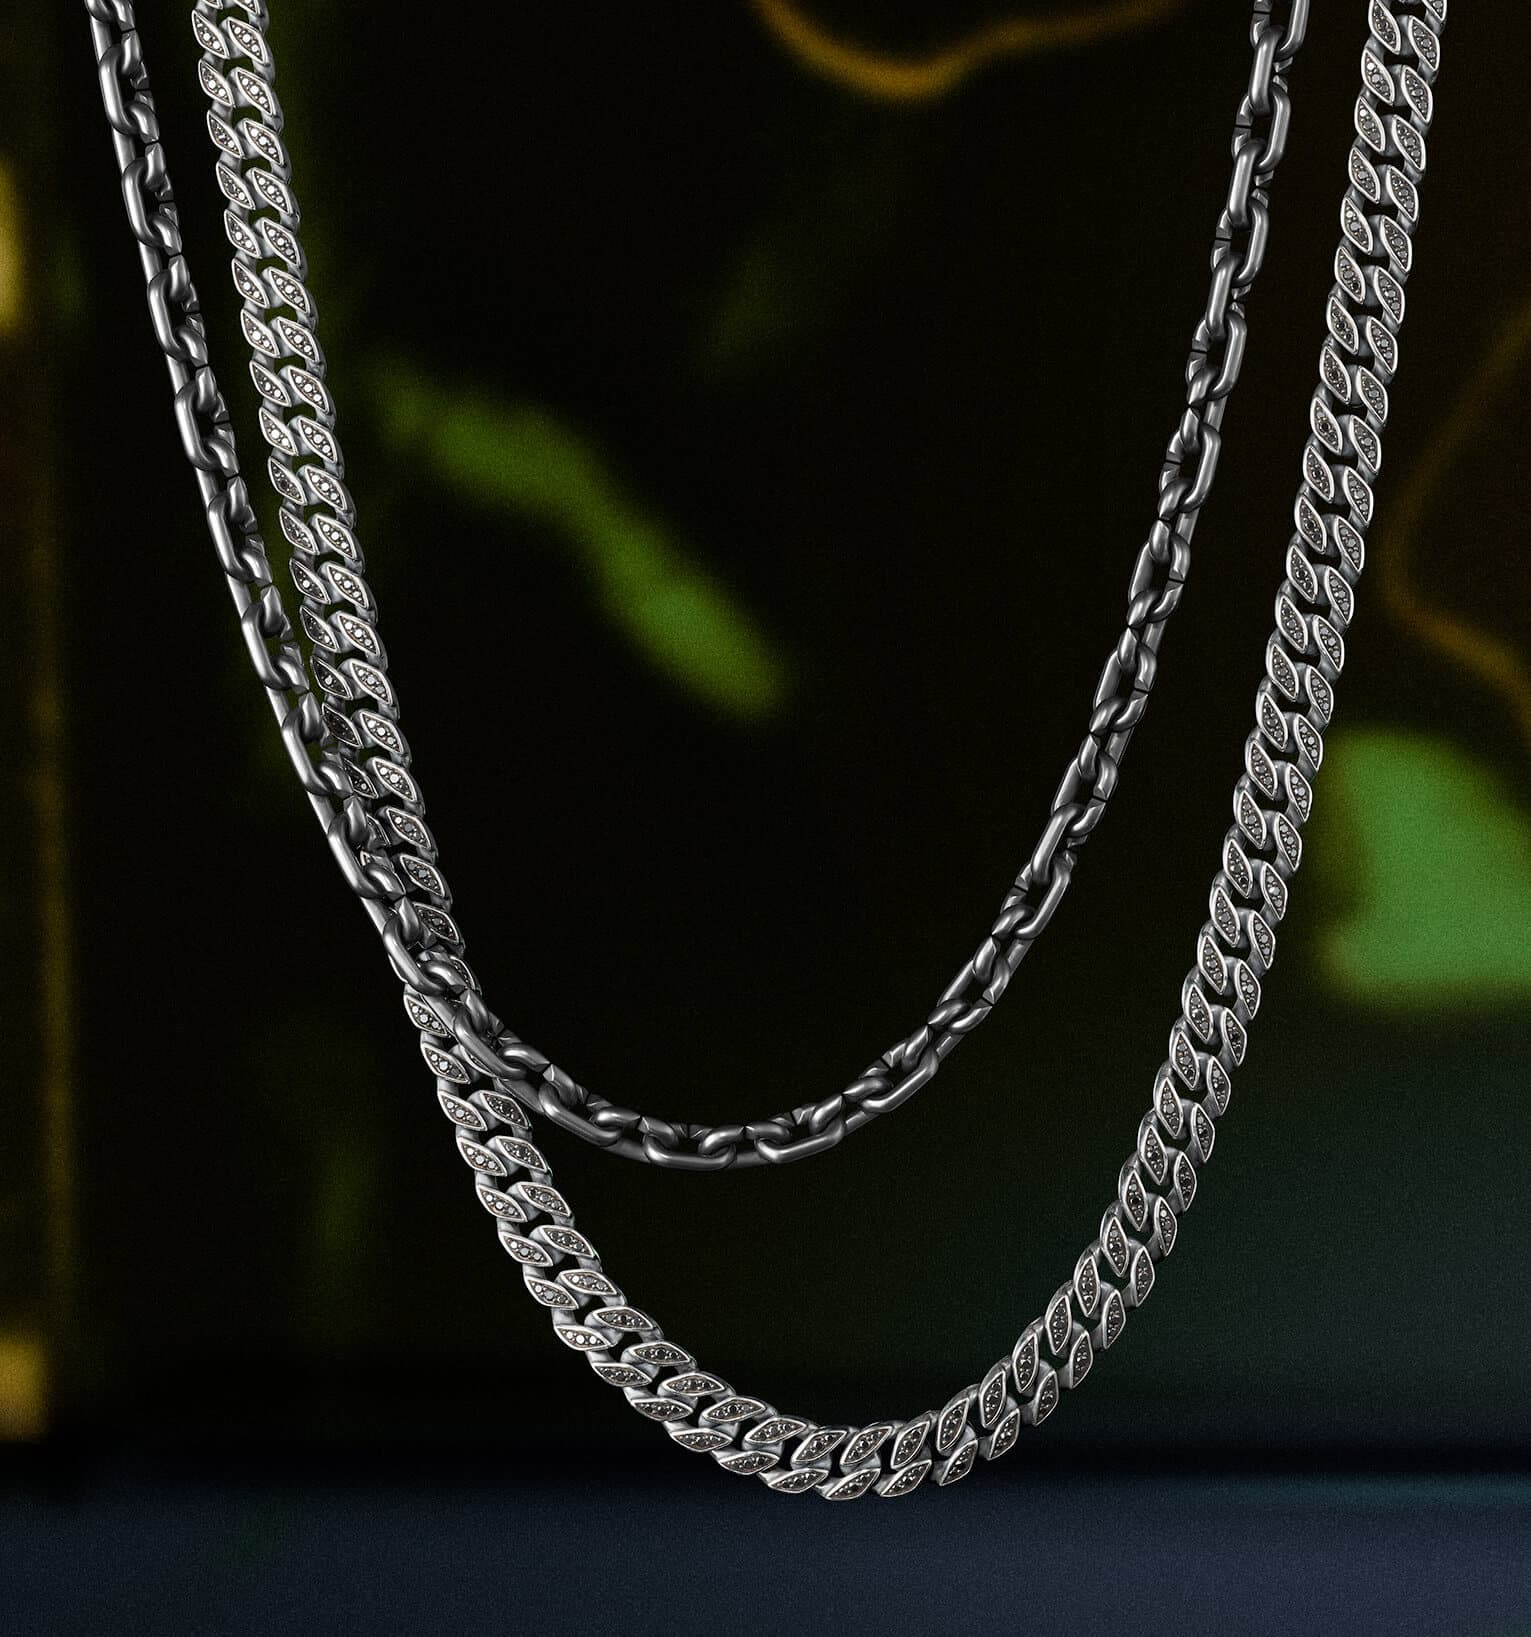 A color photo shows two David Yurman men's chain necklaces suspended in front of a colorful stained glass panel illuminated by light. One necklace is crafted from black titanium while the other is crafted from sterling silver with pavé diamonds.